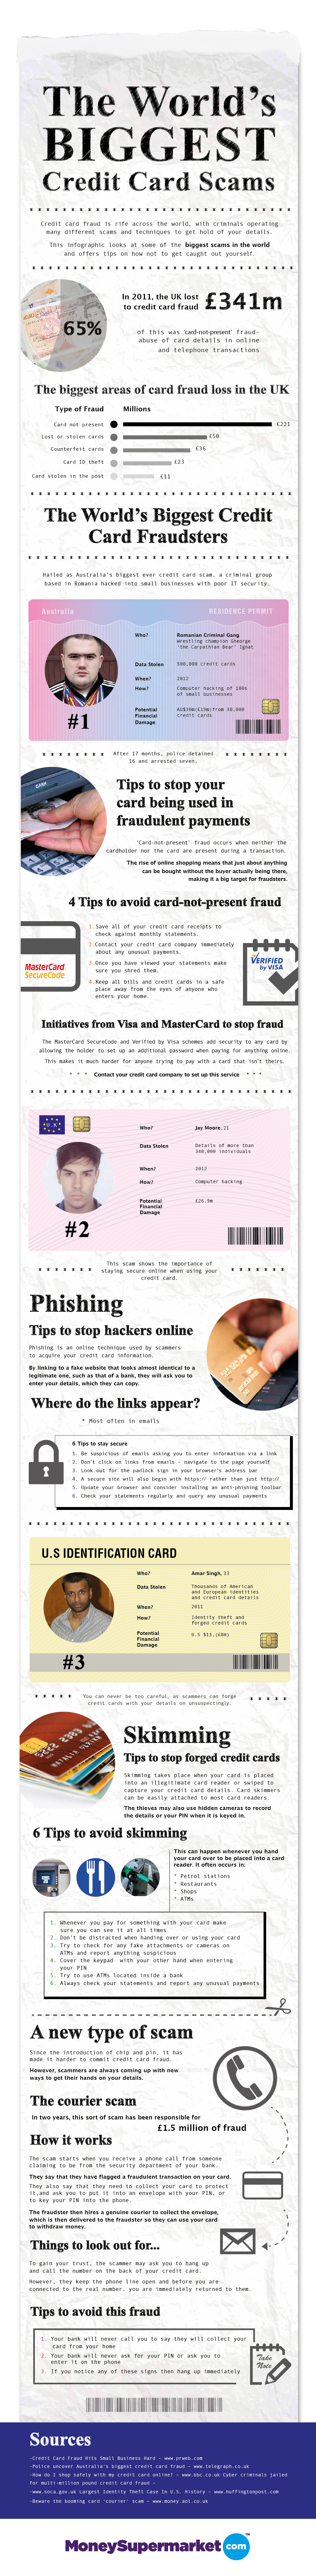 The World's Biggest Credit Card Scams